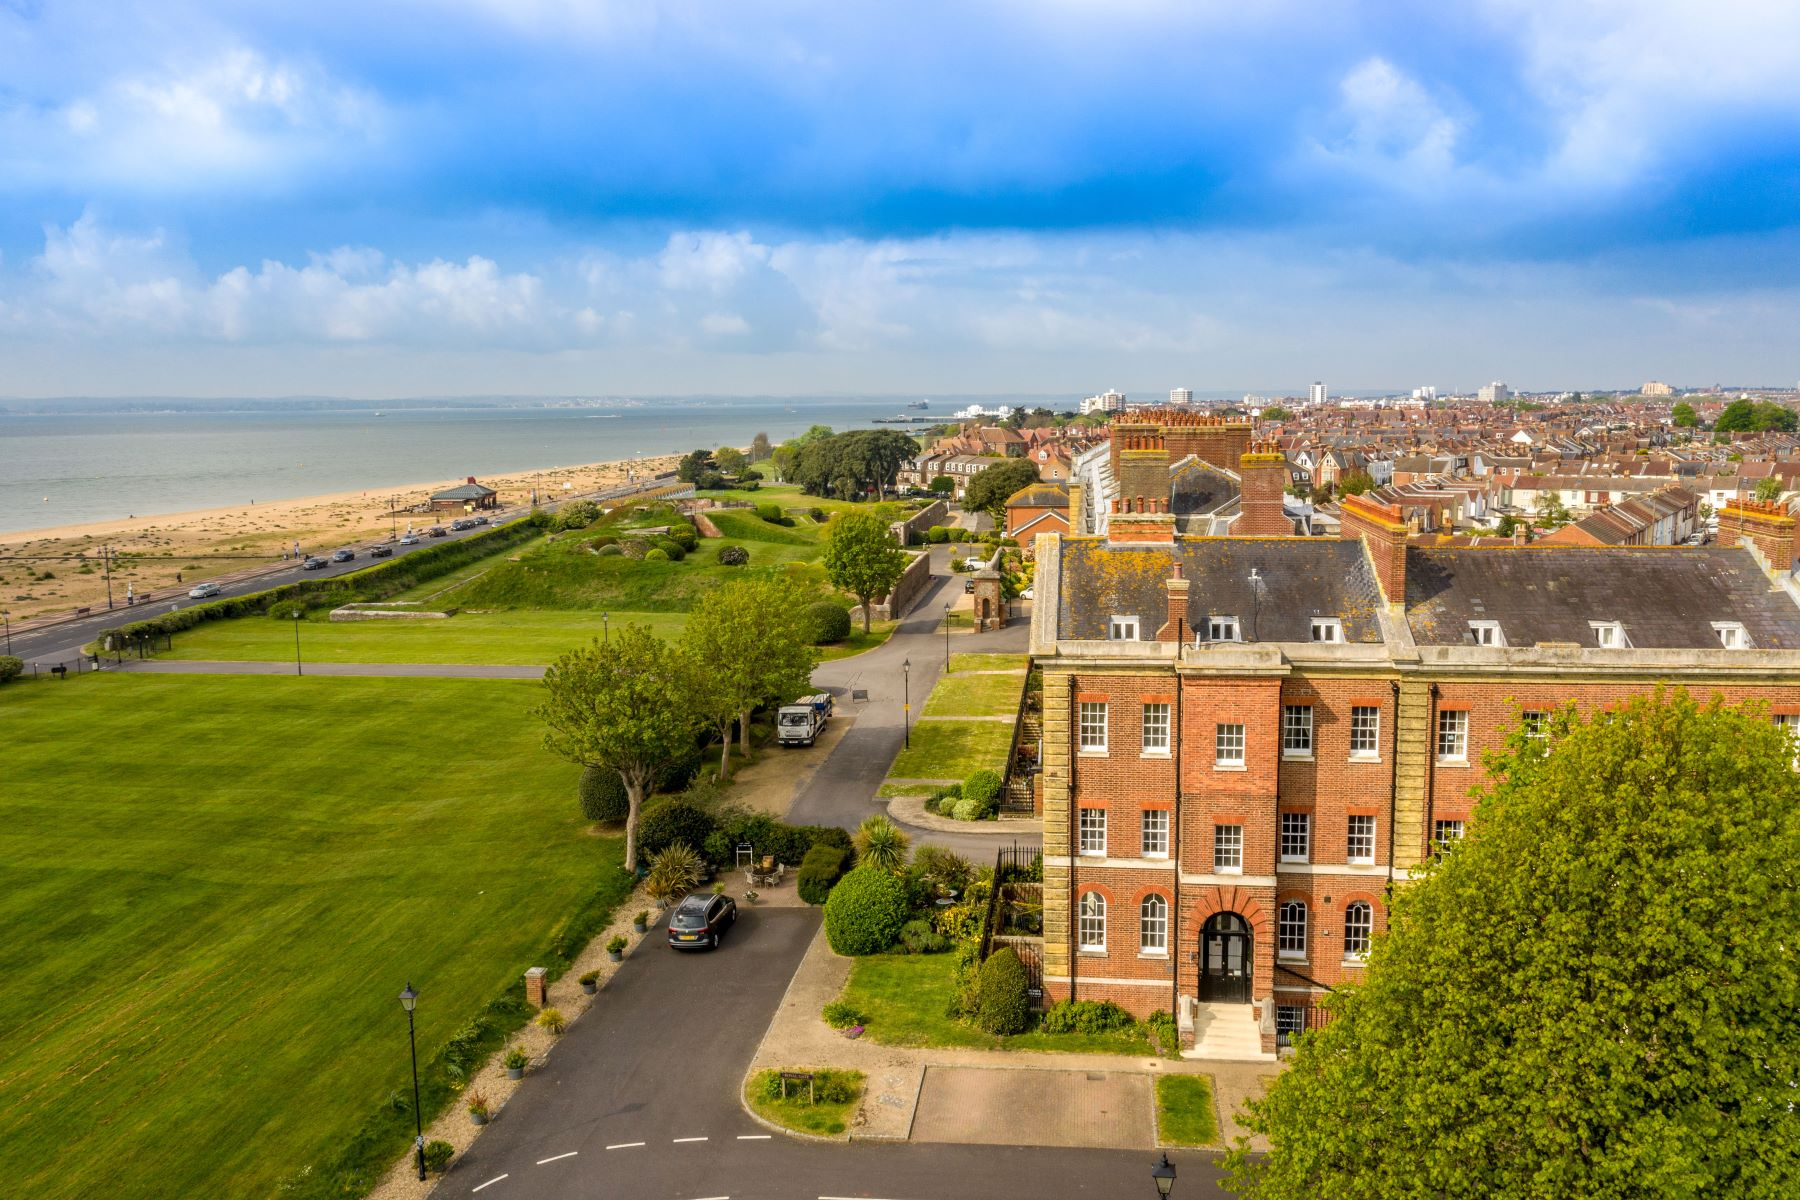 Single Family Homes for Sale at Fort View 1 Royal Gate Southsea, England PO4 9XH United Kingdom